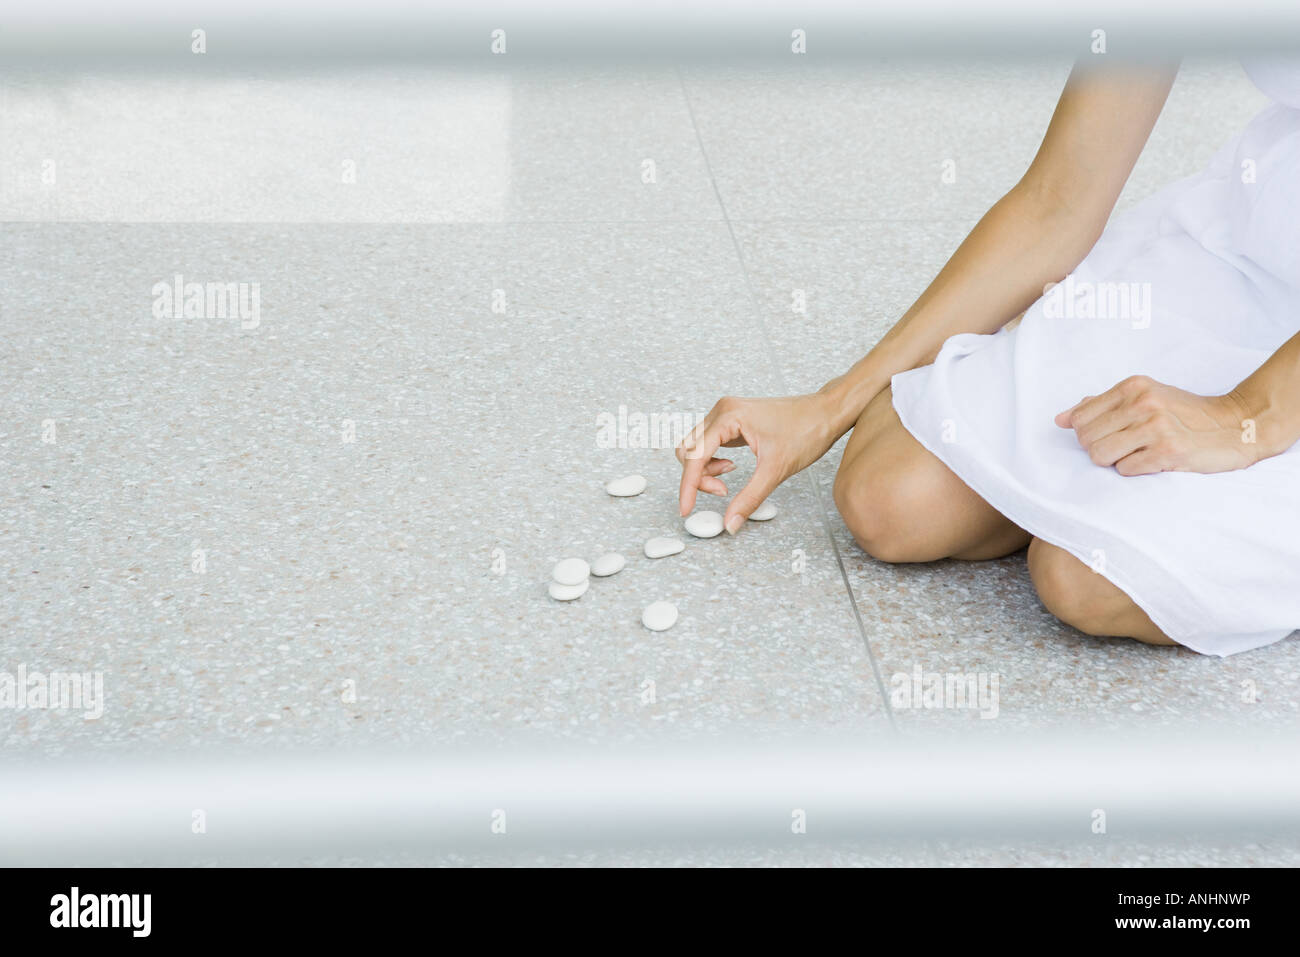 Woman sitting on the ground arranging pebbles, cropped view - Stock Image